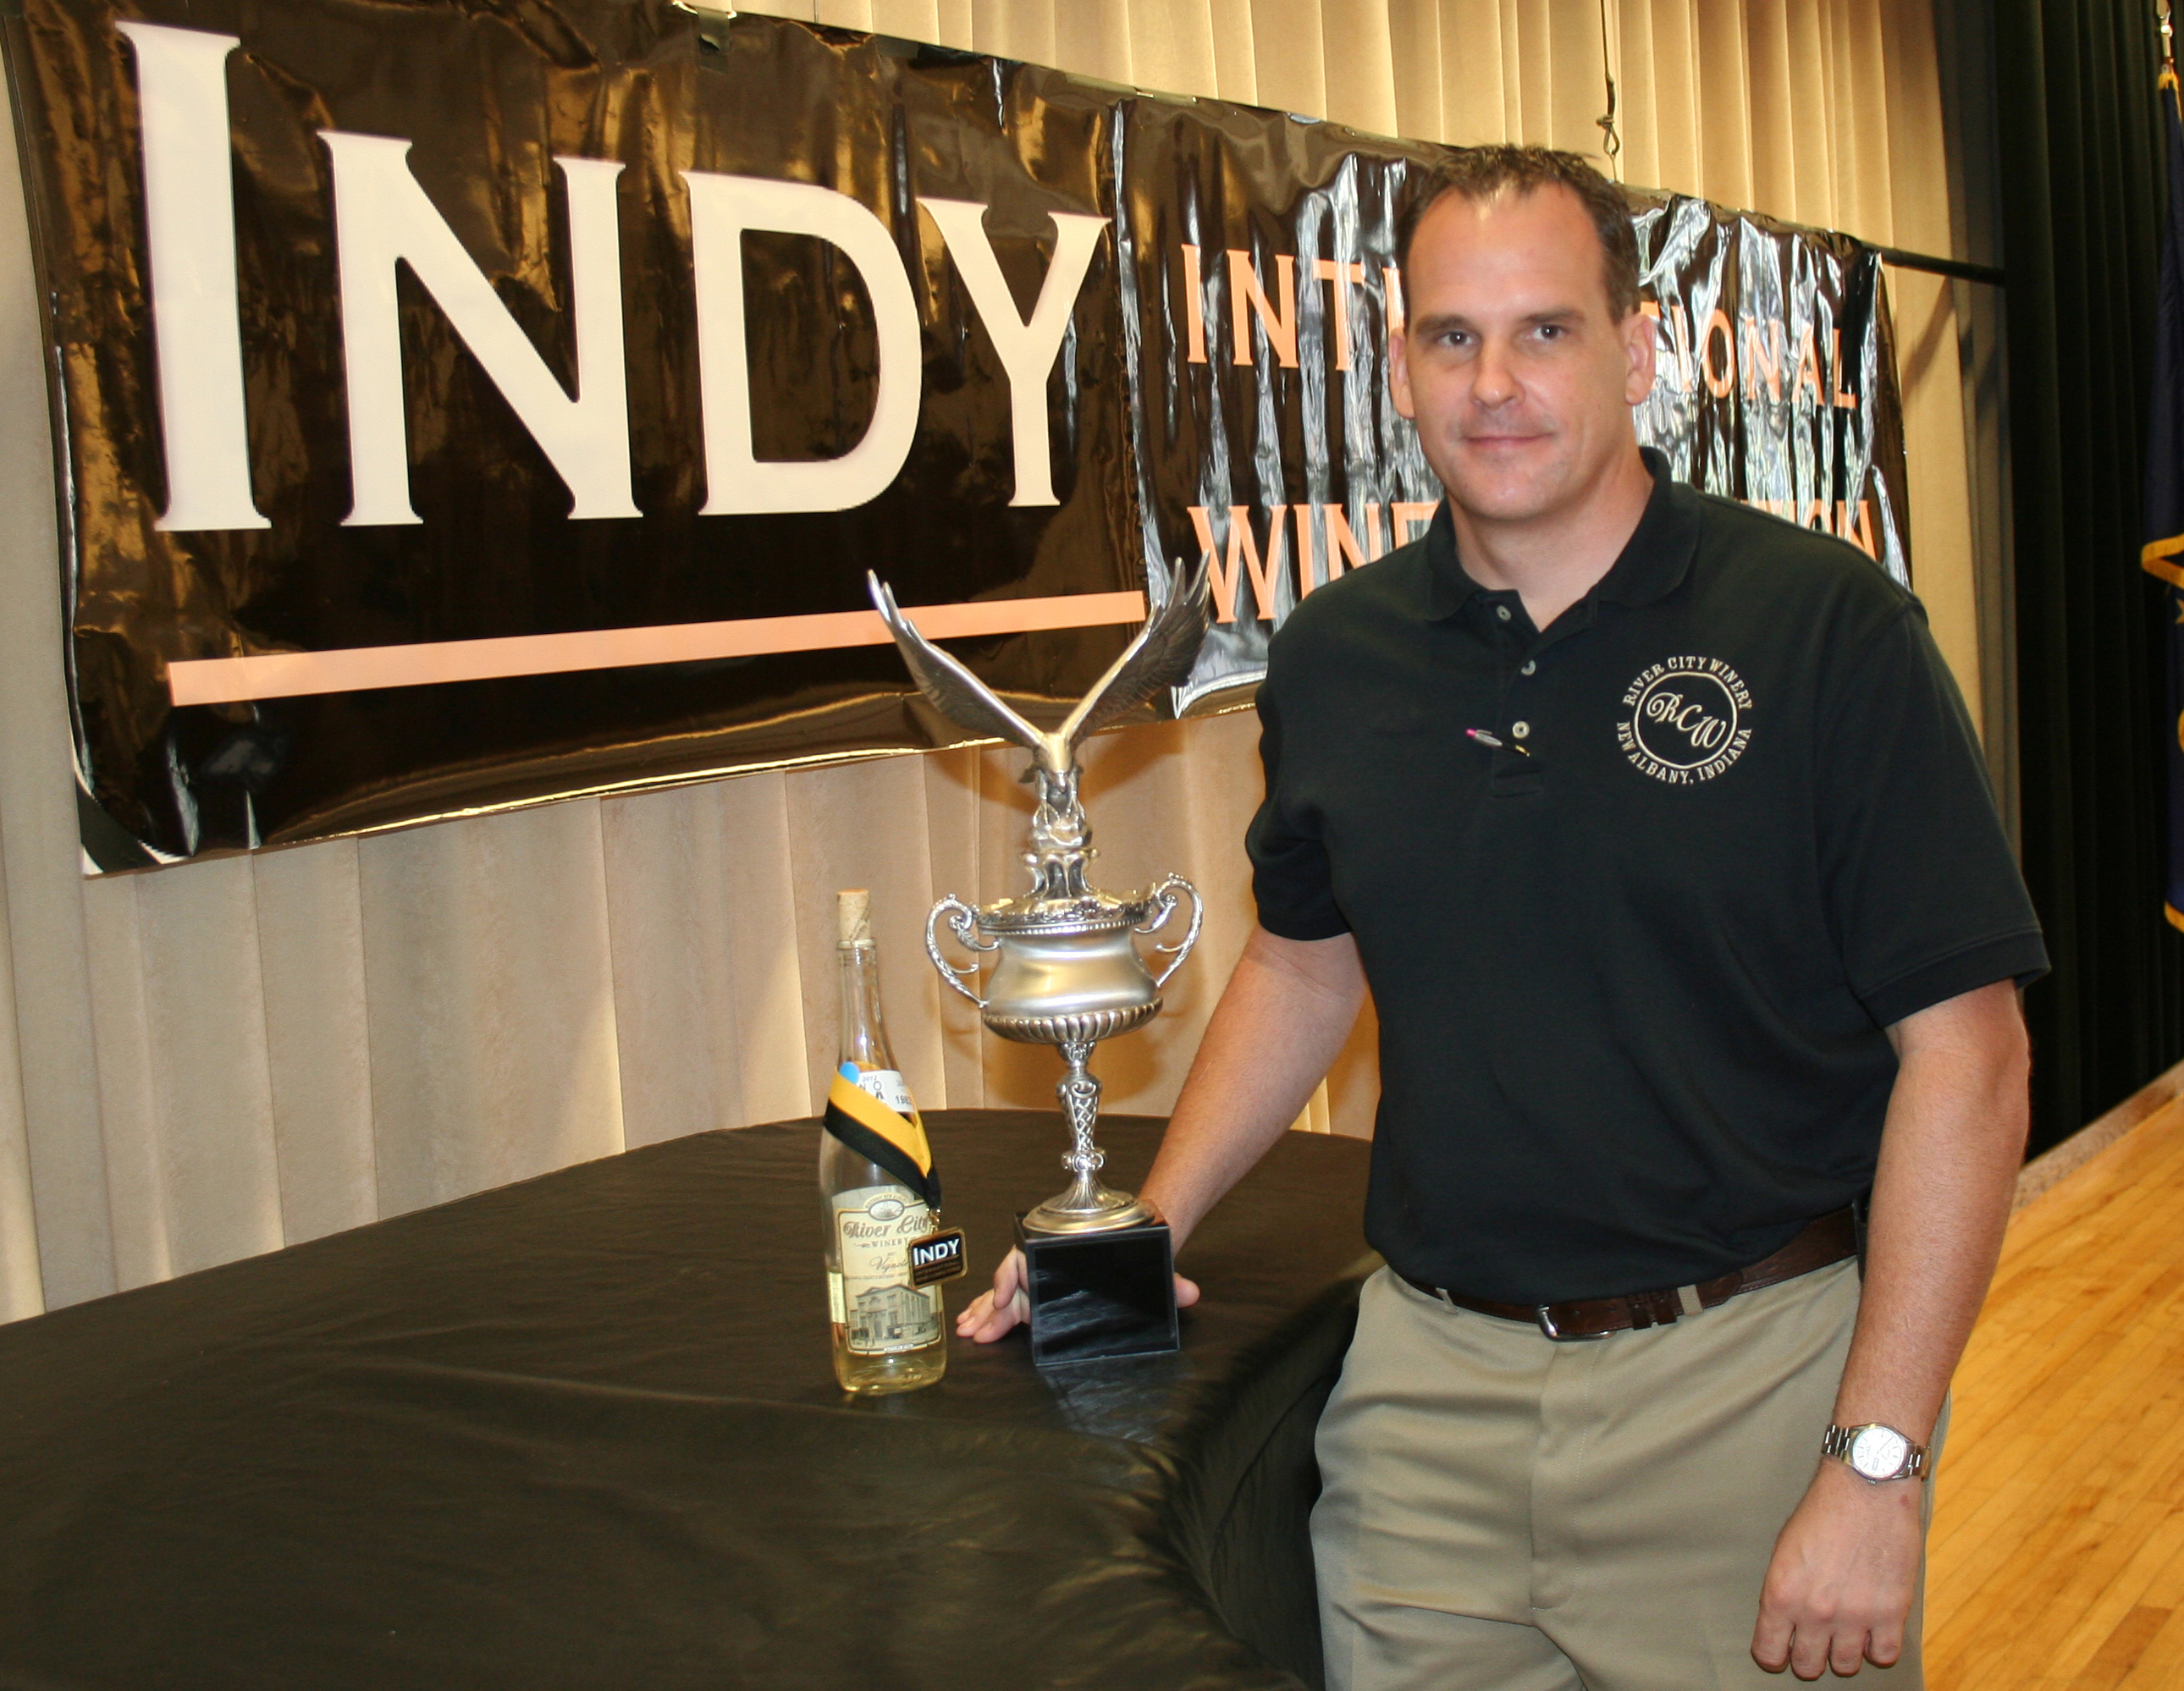 http://www.purdue.edu/newsroom/releases/2012/Q3/indiana -winery-takes-top-honors-in-indy-international.html